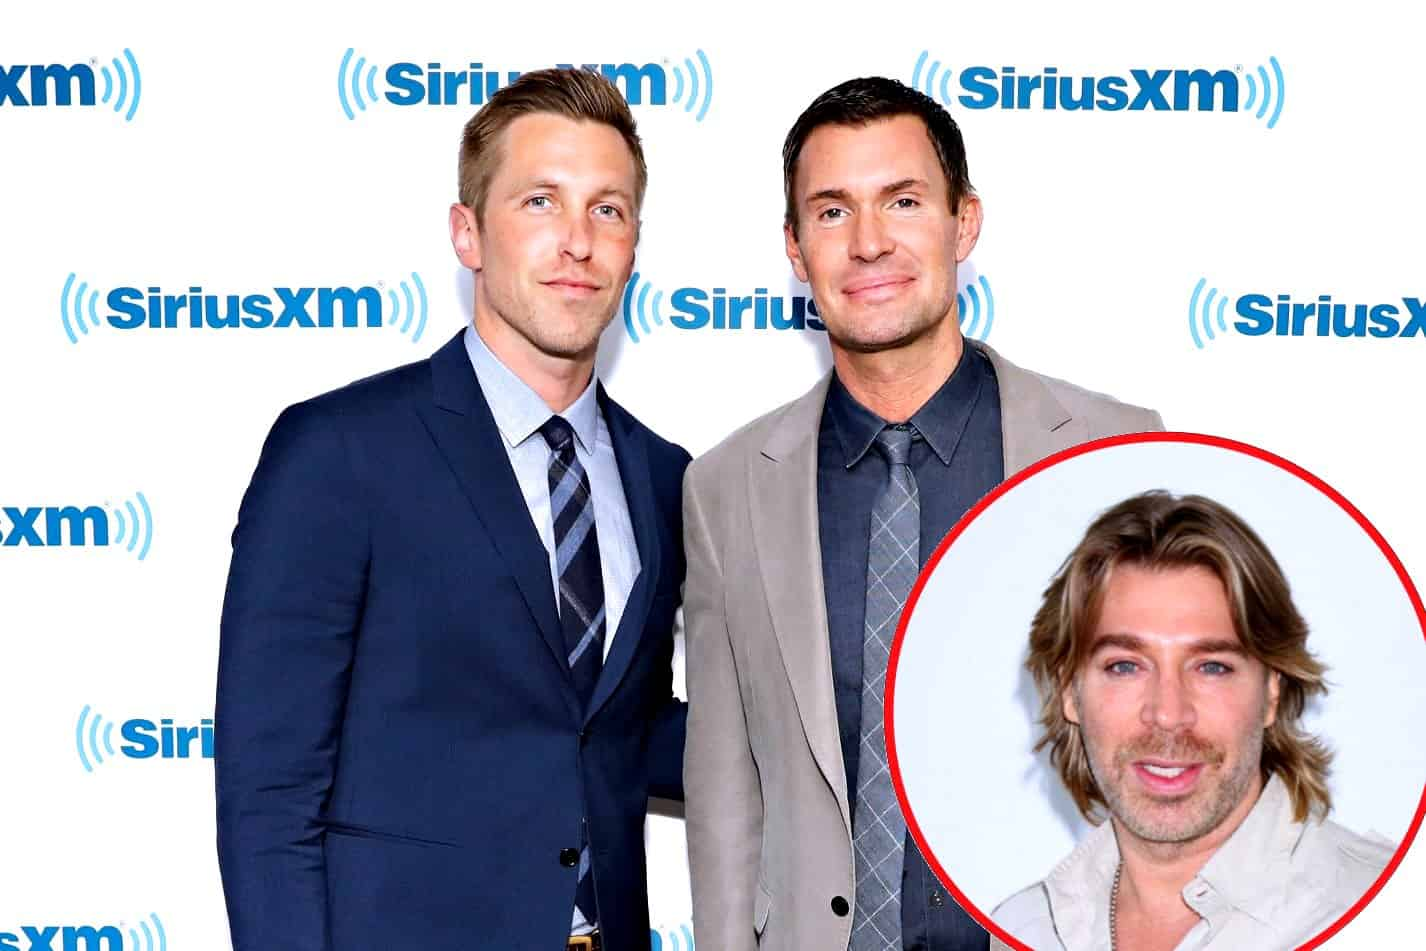 Flipping Out's Jeff Lewis Accuses Ex Gage Edward of Going to Paris With Chaz Dean, Receives Cease and Desist Letter From Gage Amid Custody Battle